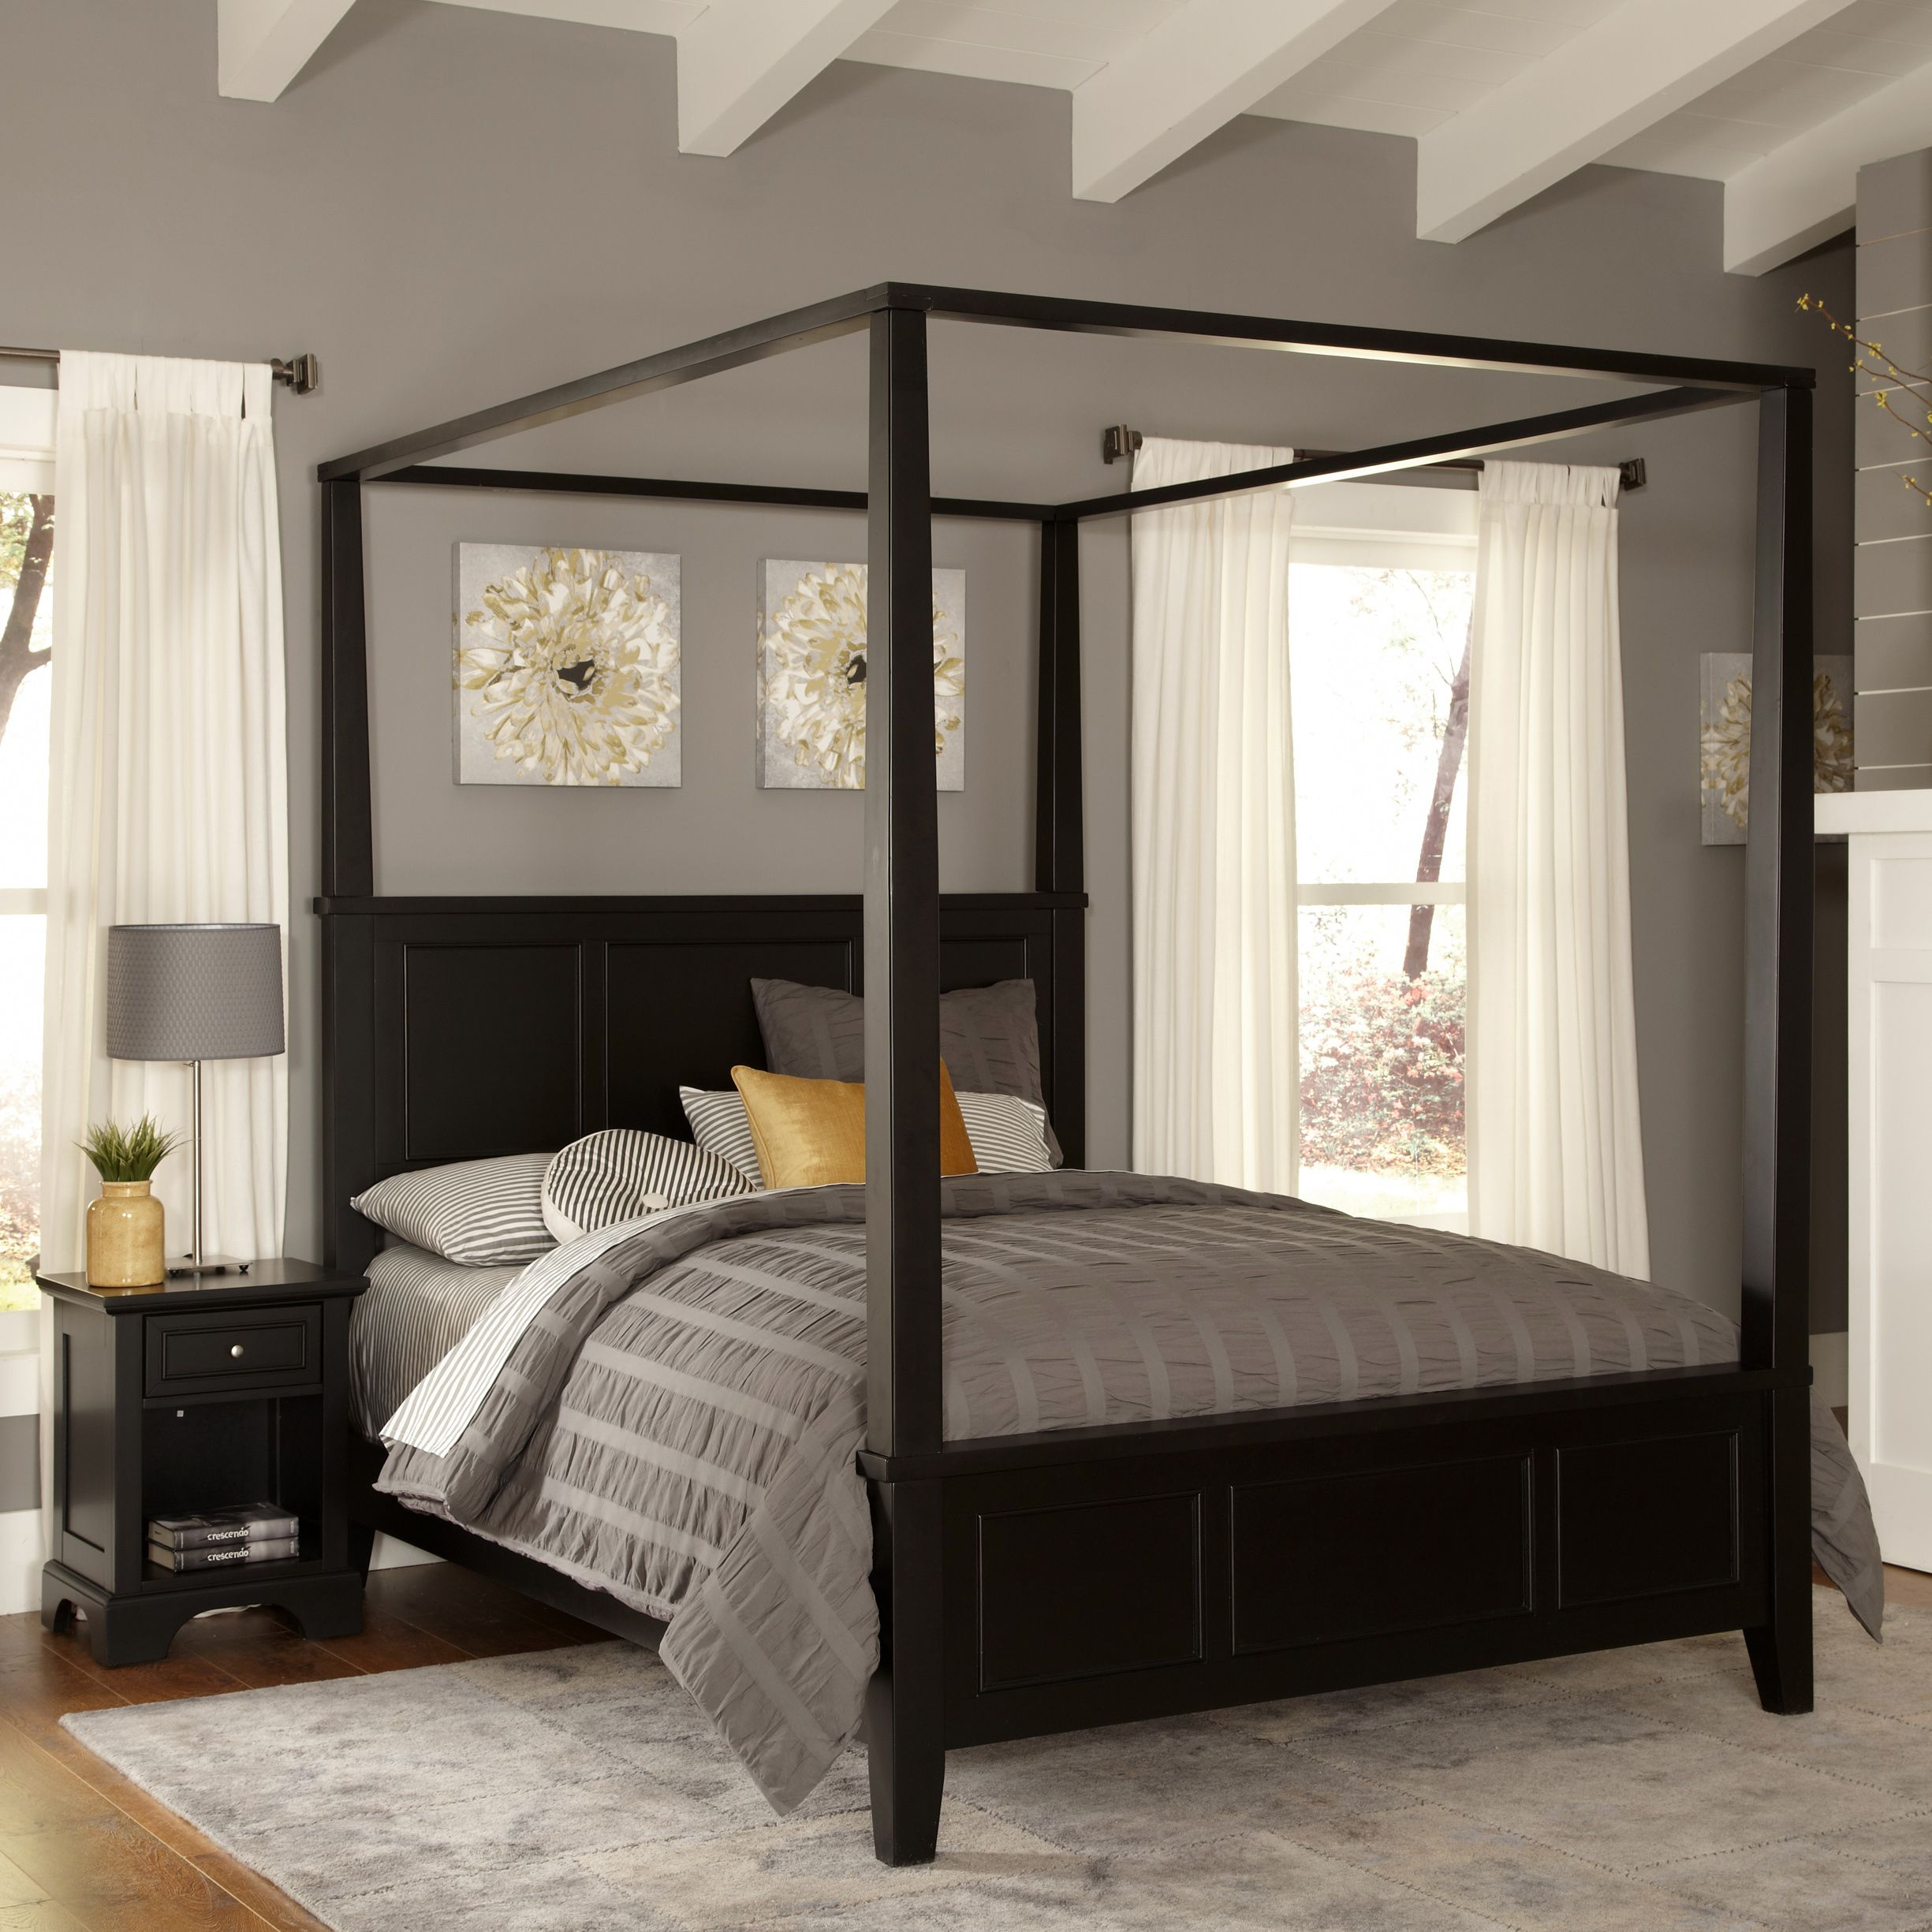 Overstock Bedroom Furniture Sets Bedford King Canopy Bed And Night Stand By Home Styles By Home